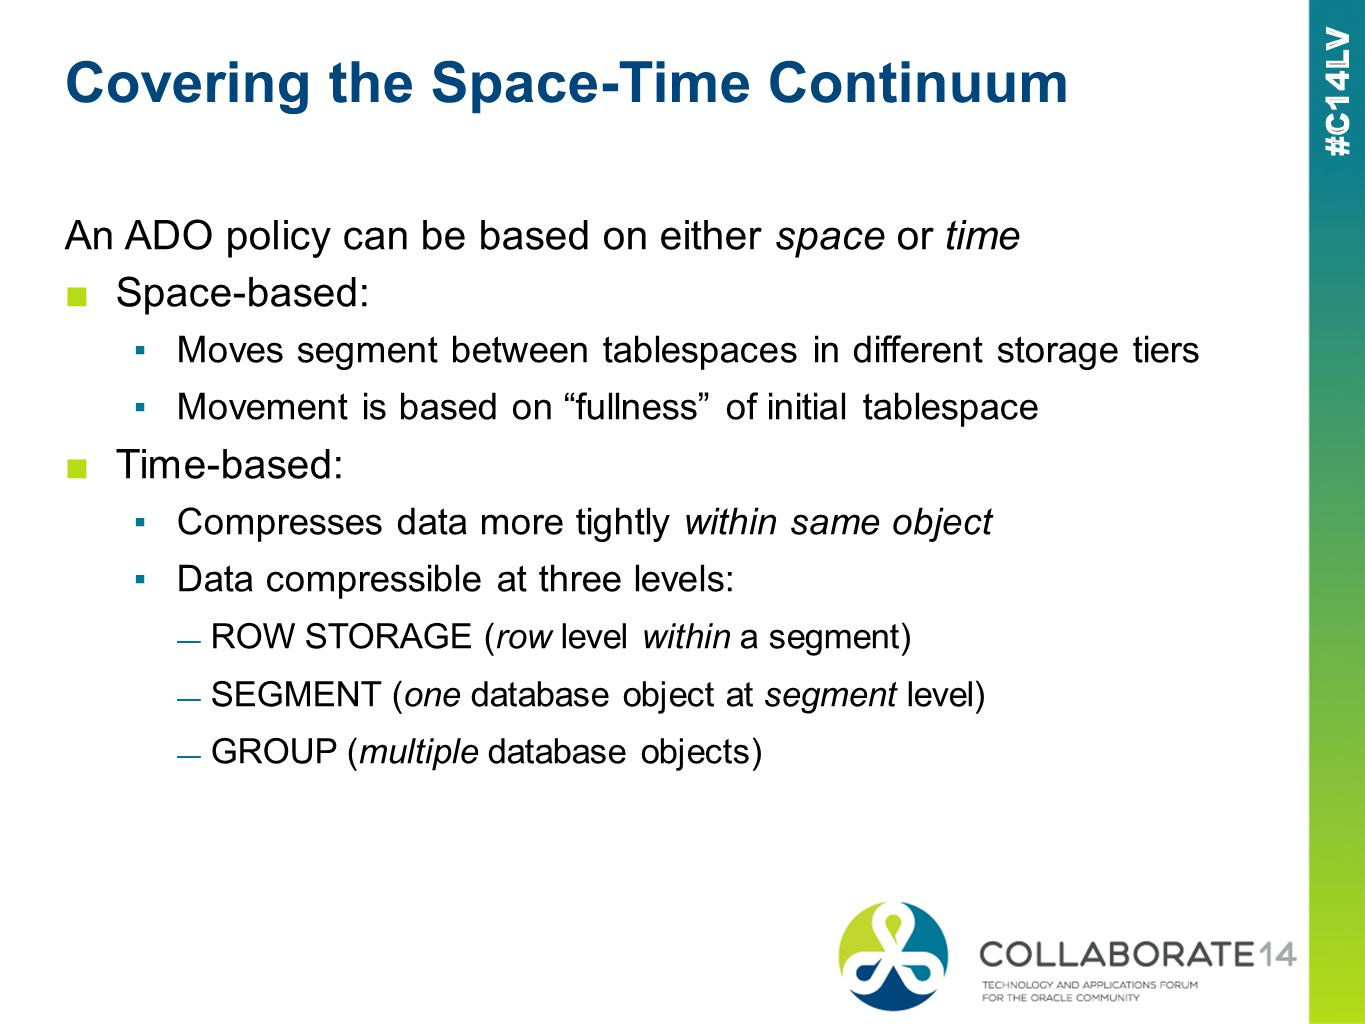 Covering the Space-Time Continuum An ADO policy can be based on either space or time Space-based: Moves segment between tablespaces in different storage tiers Movement is based on fullness of initial tablespace Time-based: Compresses data more tightly within same object Data compressible at three levels: ROW STORAGE (row level within a segment) SEGMENT (one database object at segment level) GROUP (multiple database objects)